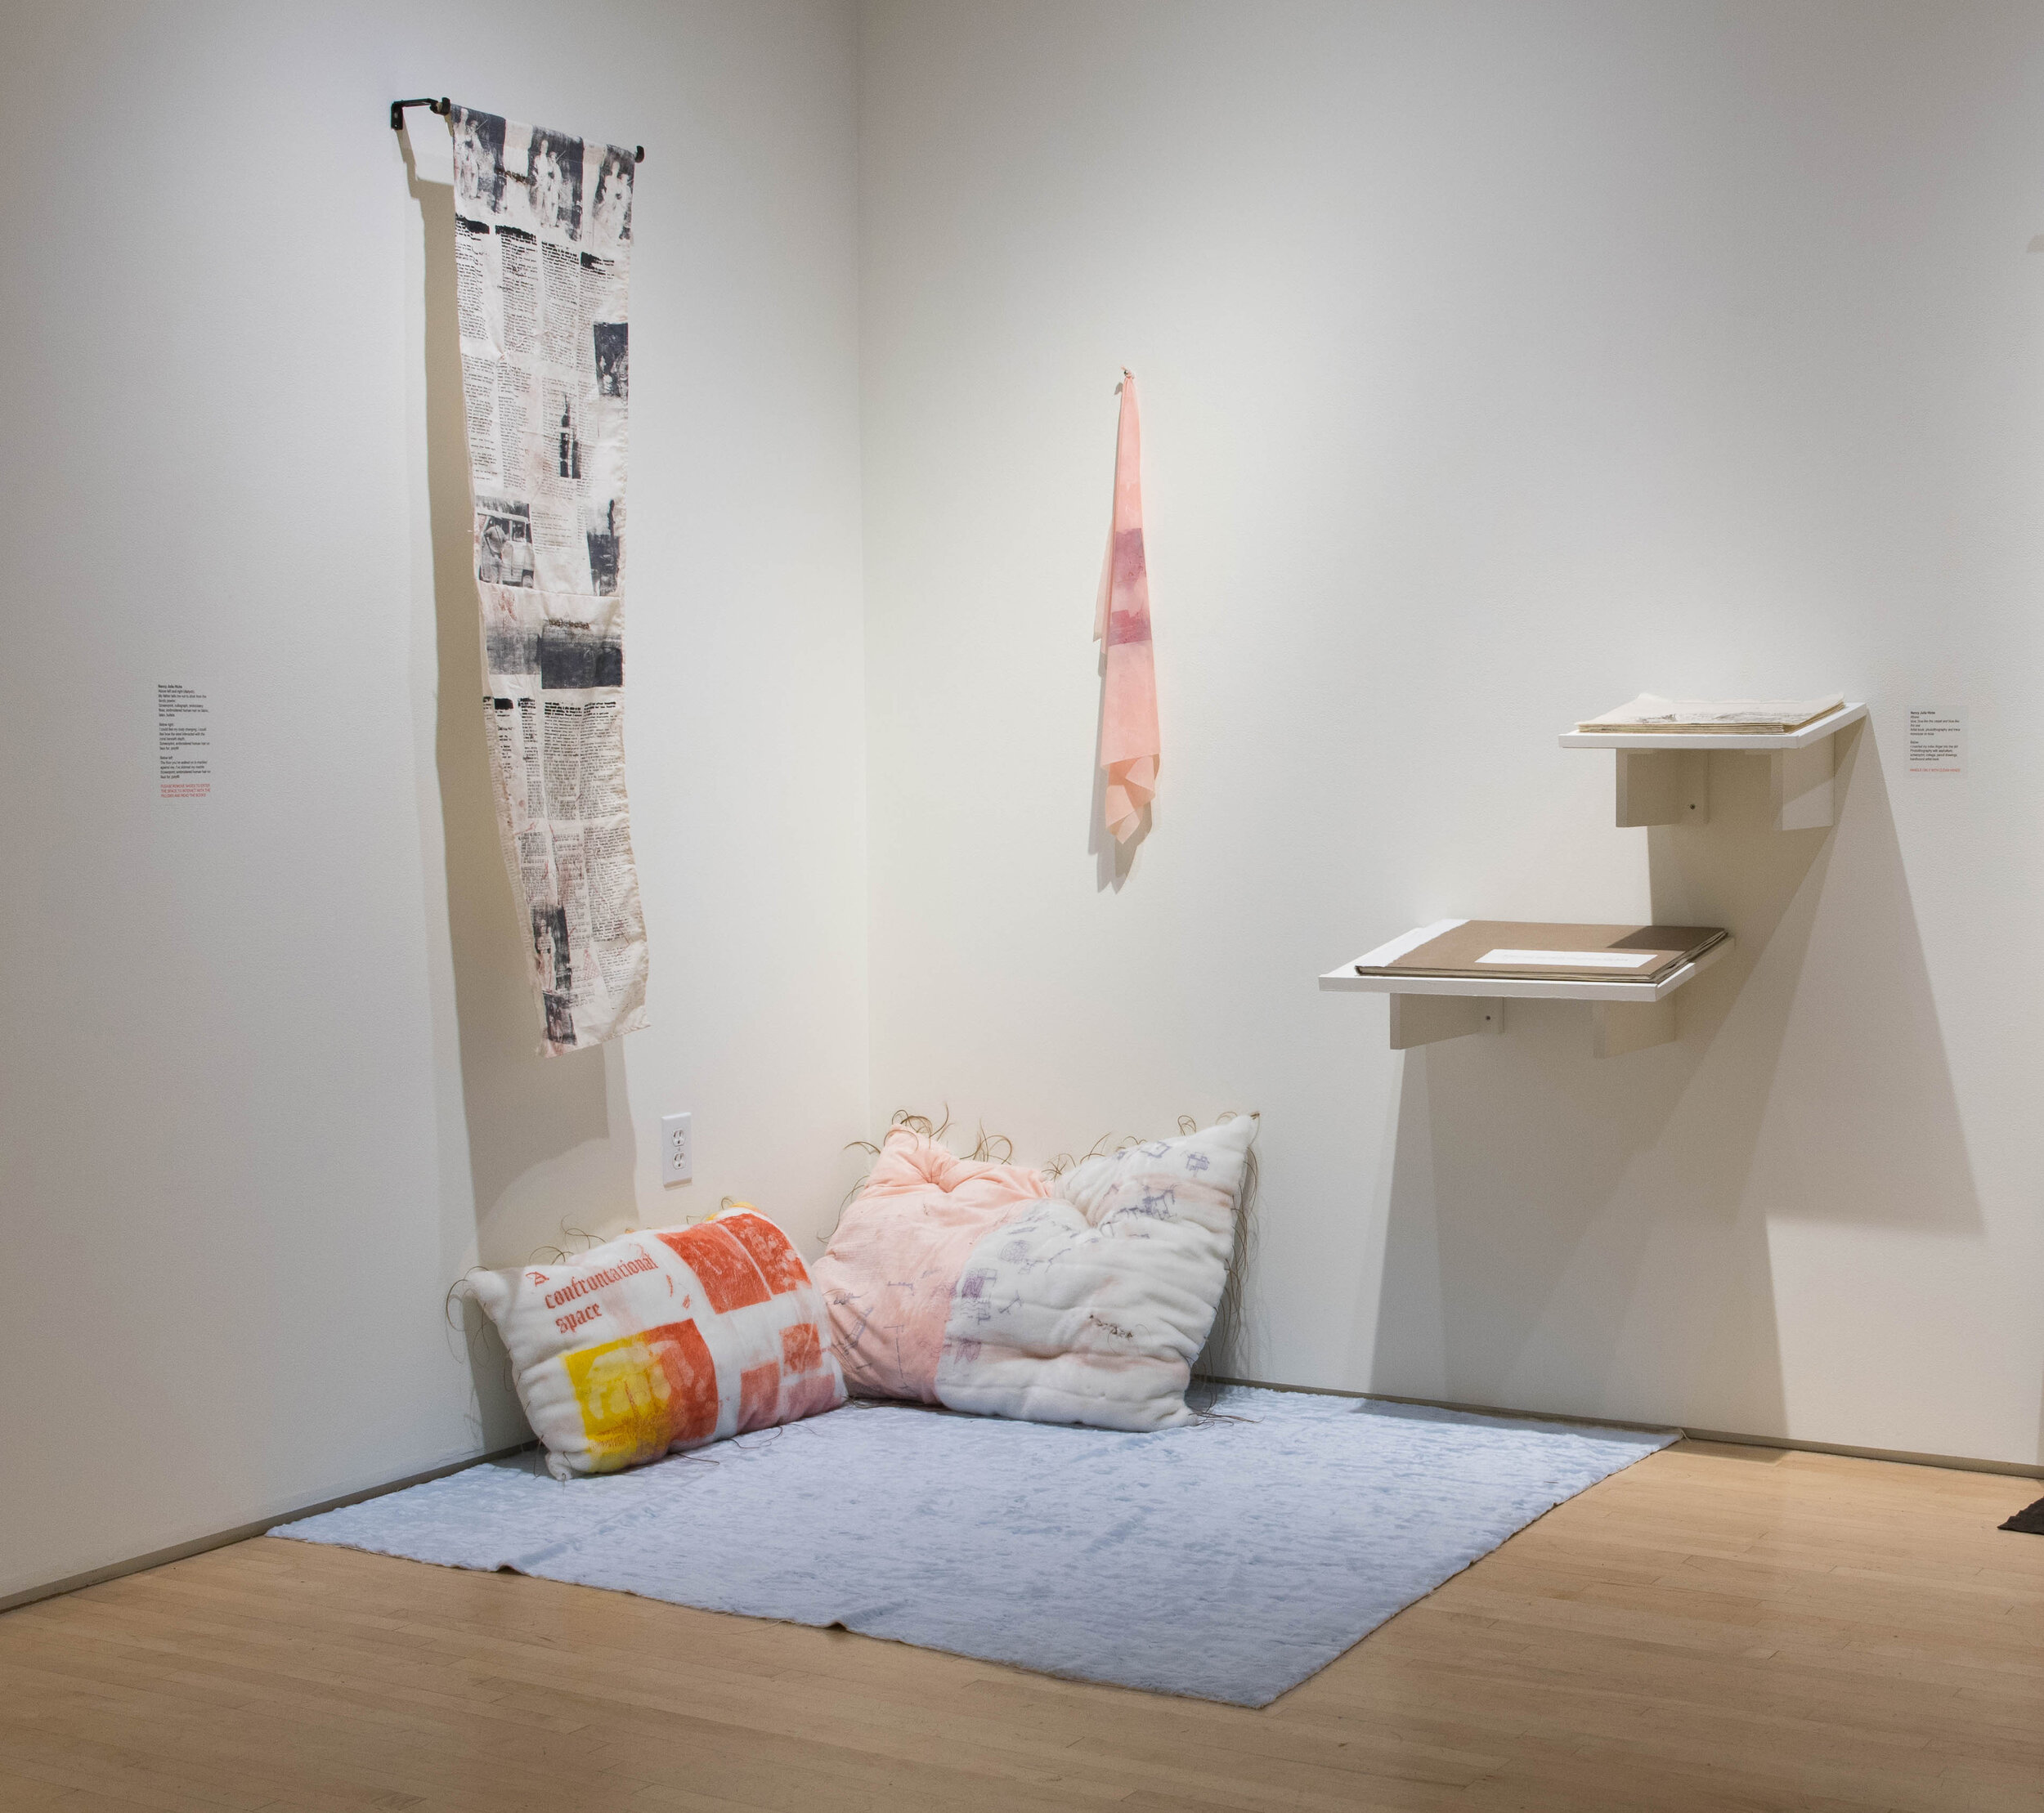 Comfort Installation   Mixed media installation containing screenprinted faux fur pillows, embroidery, artist books, and screenprint and bullets on latex  2019